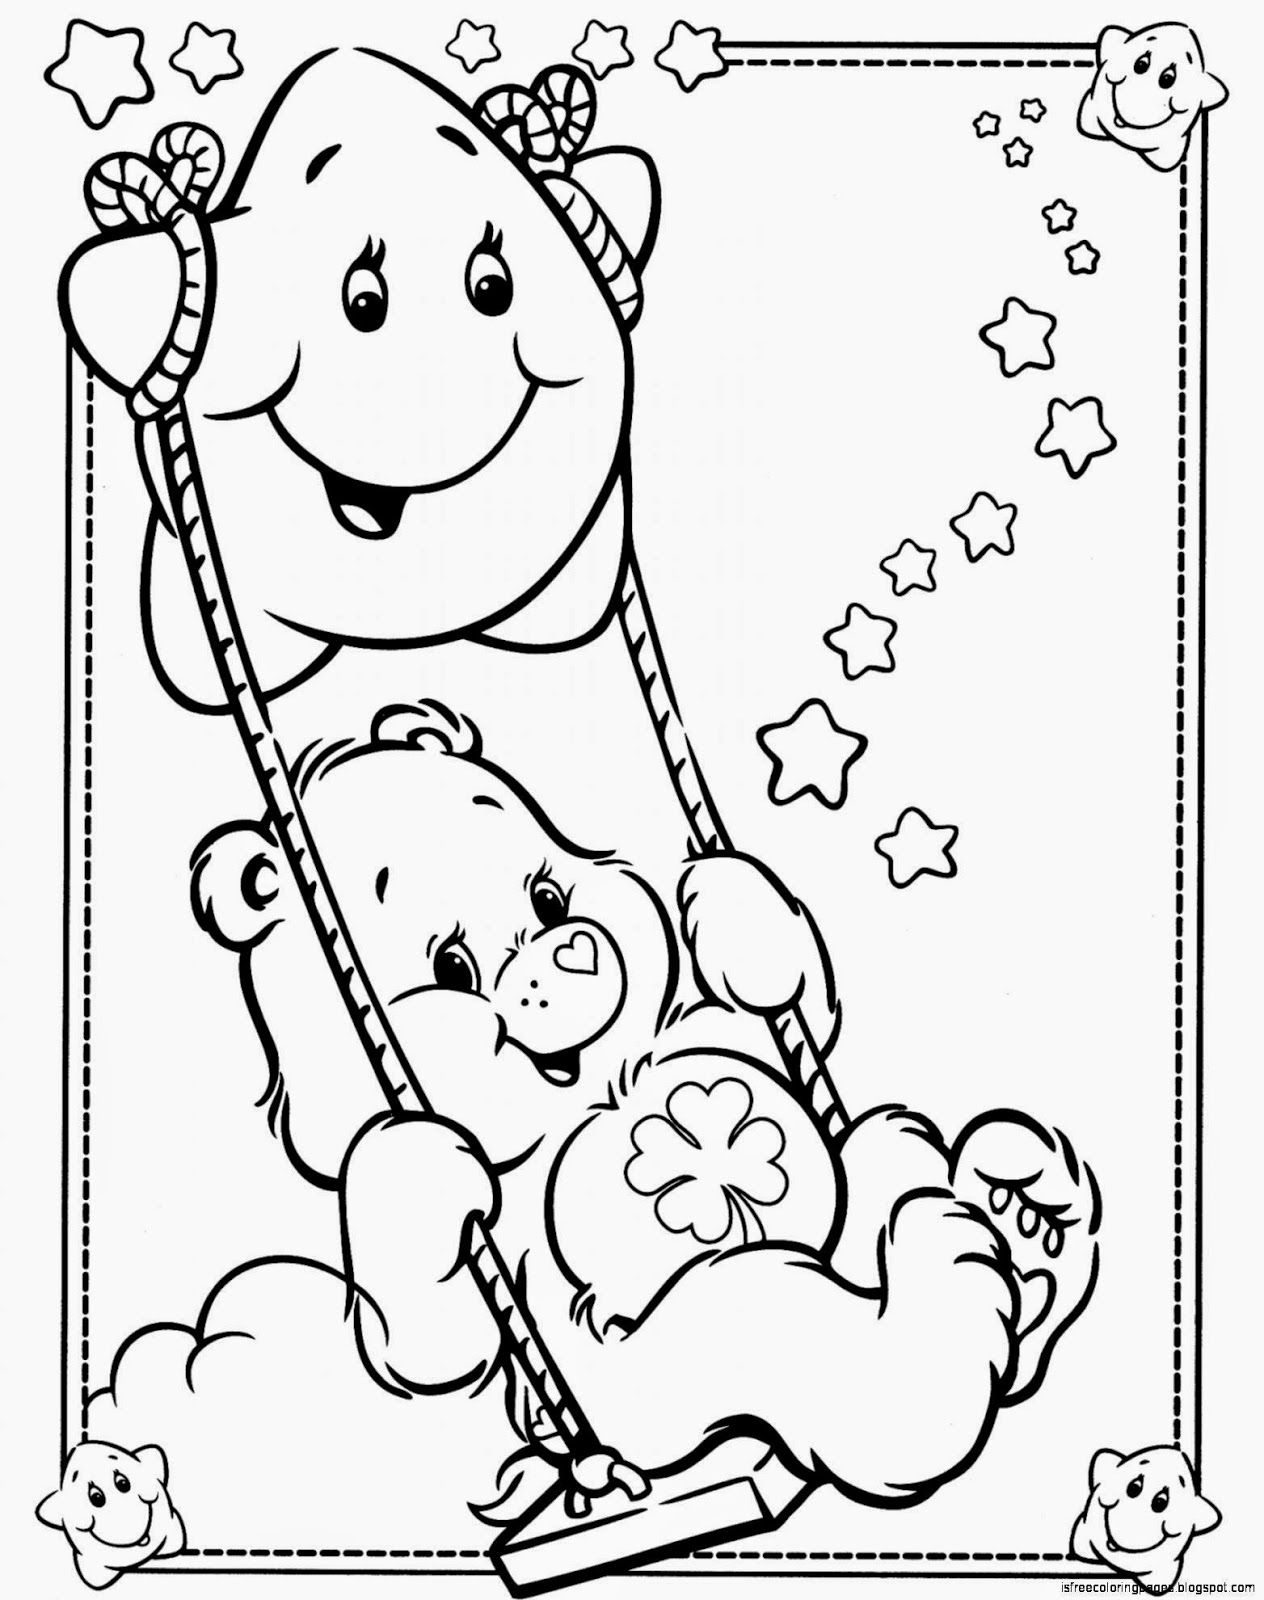 care bear coloring pages with numbers | Magic Roundabout Coloring Pages - Coloring Home